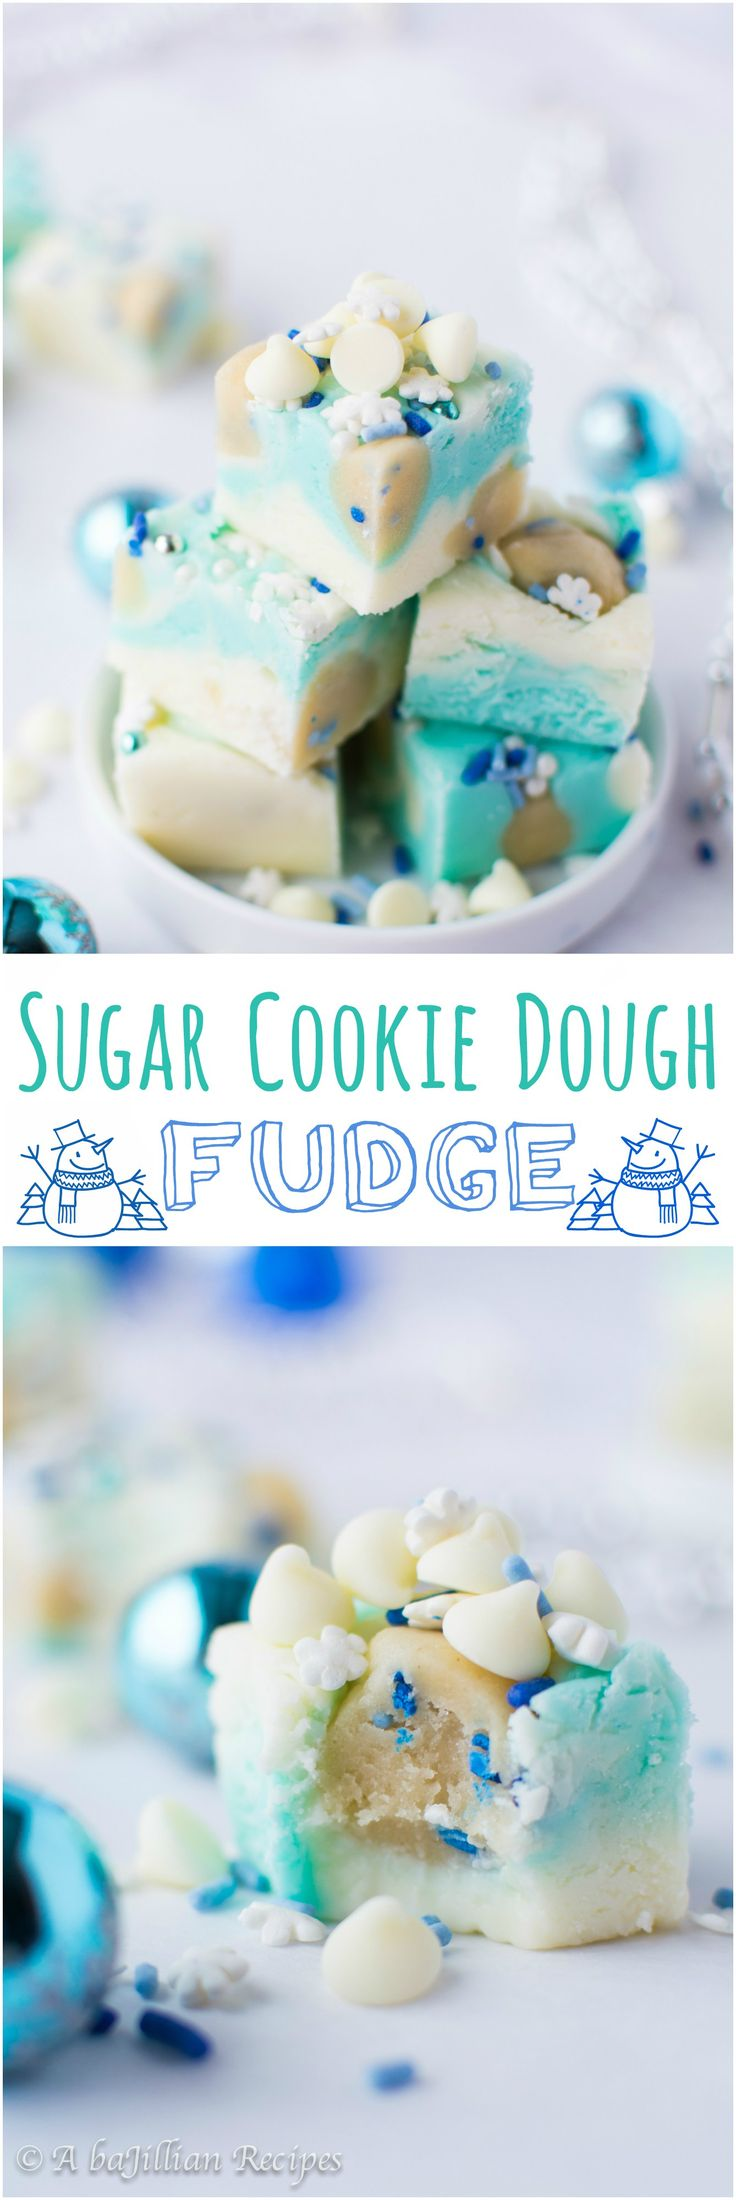 sugar-cookie-dough-fudge-A super easy, soft and creamy white chocolate fudge that's guaranteed to satisfy your raw cookie dough eating obsession!